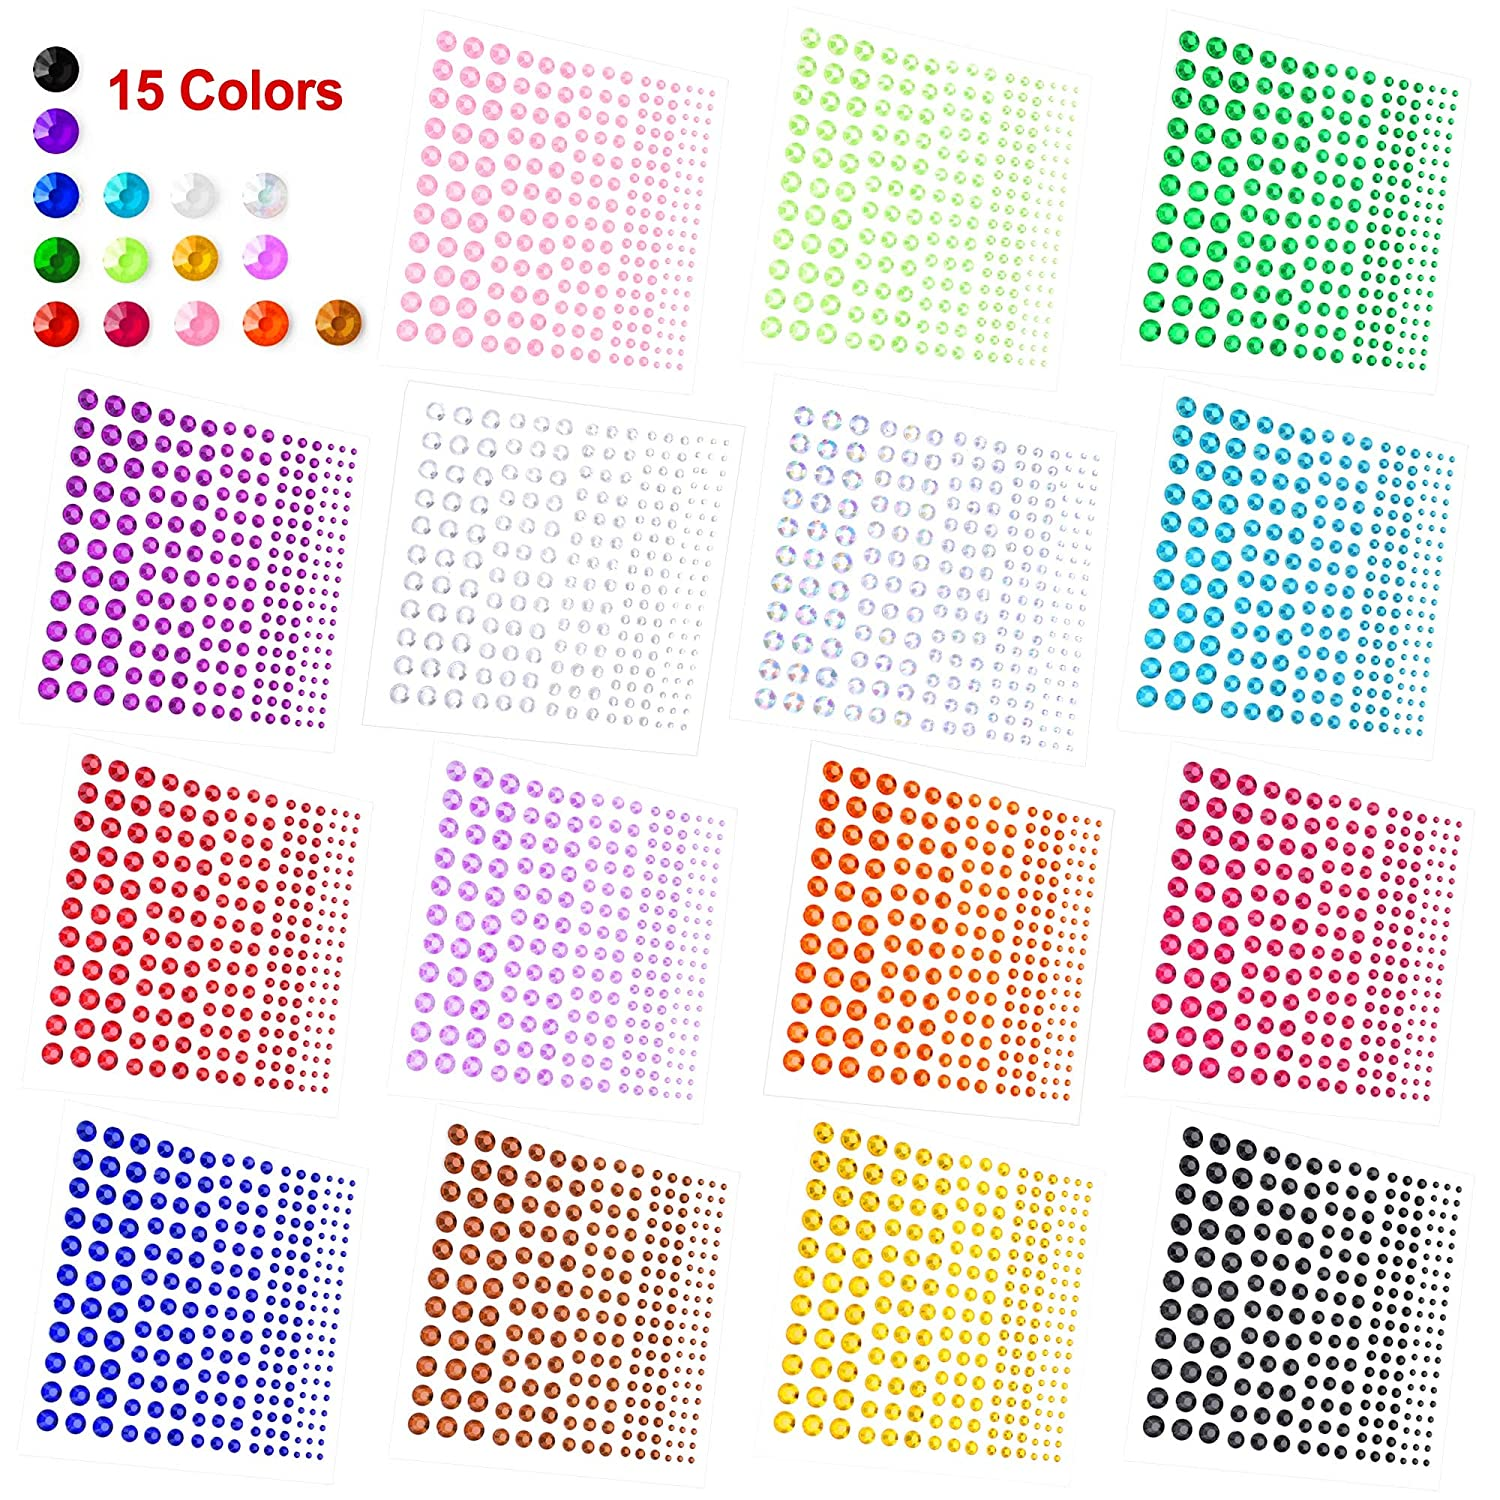 Festival Carnival Makeup Phogary Self-Adhesive Rhinestone Sticker 3375 Pieces Crystal in 5 Size 15 Colors Bling Craft Jewels Gem Stickers for Crafts DIY Nails Body